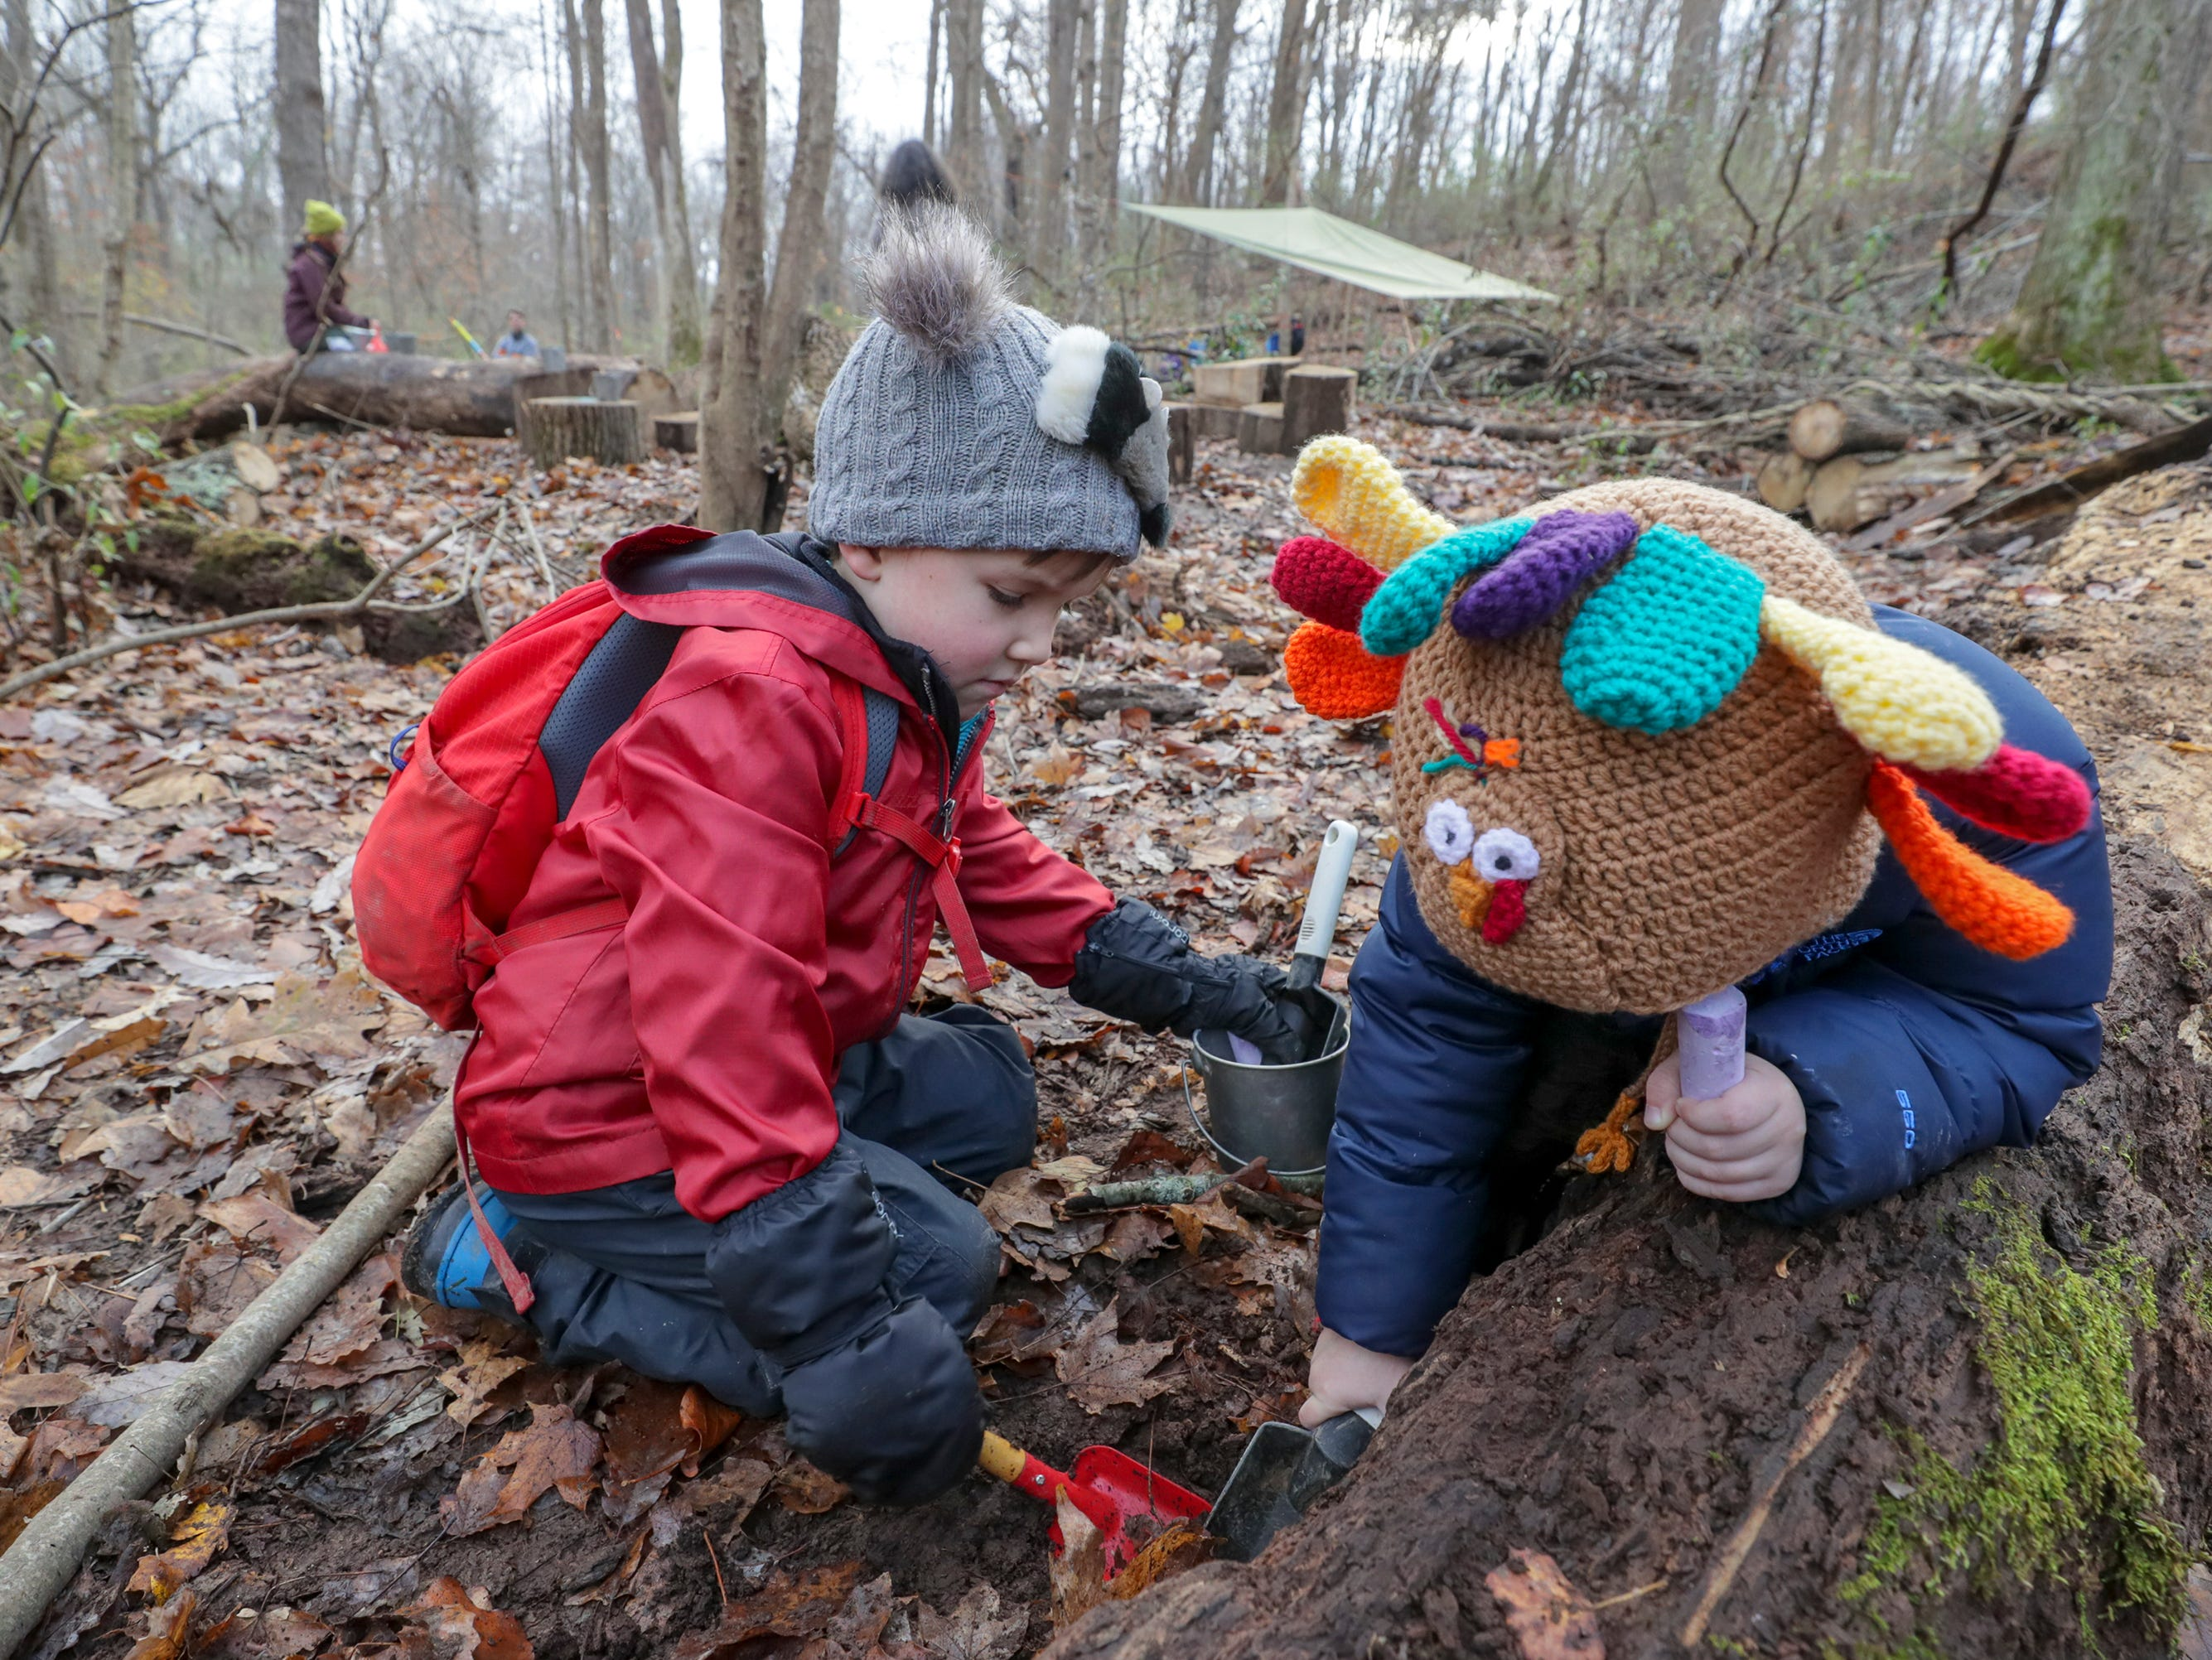 Will Clark and Lincoln Oakes check out what's under a fallen log as they play at Thrive Forest School at Creasey Mahan Nature Preserve.November 19 2018